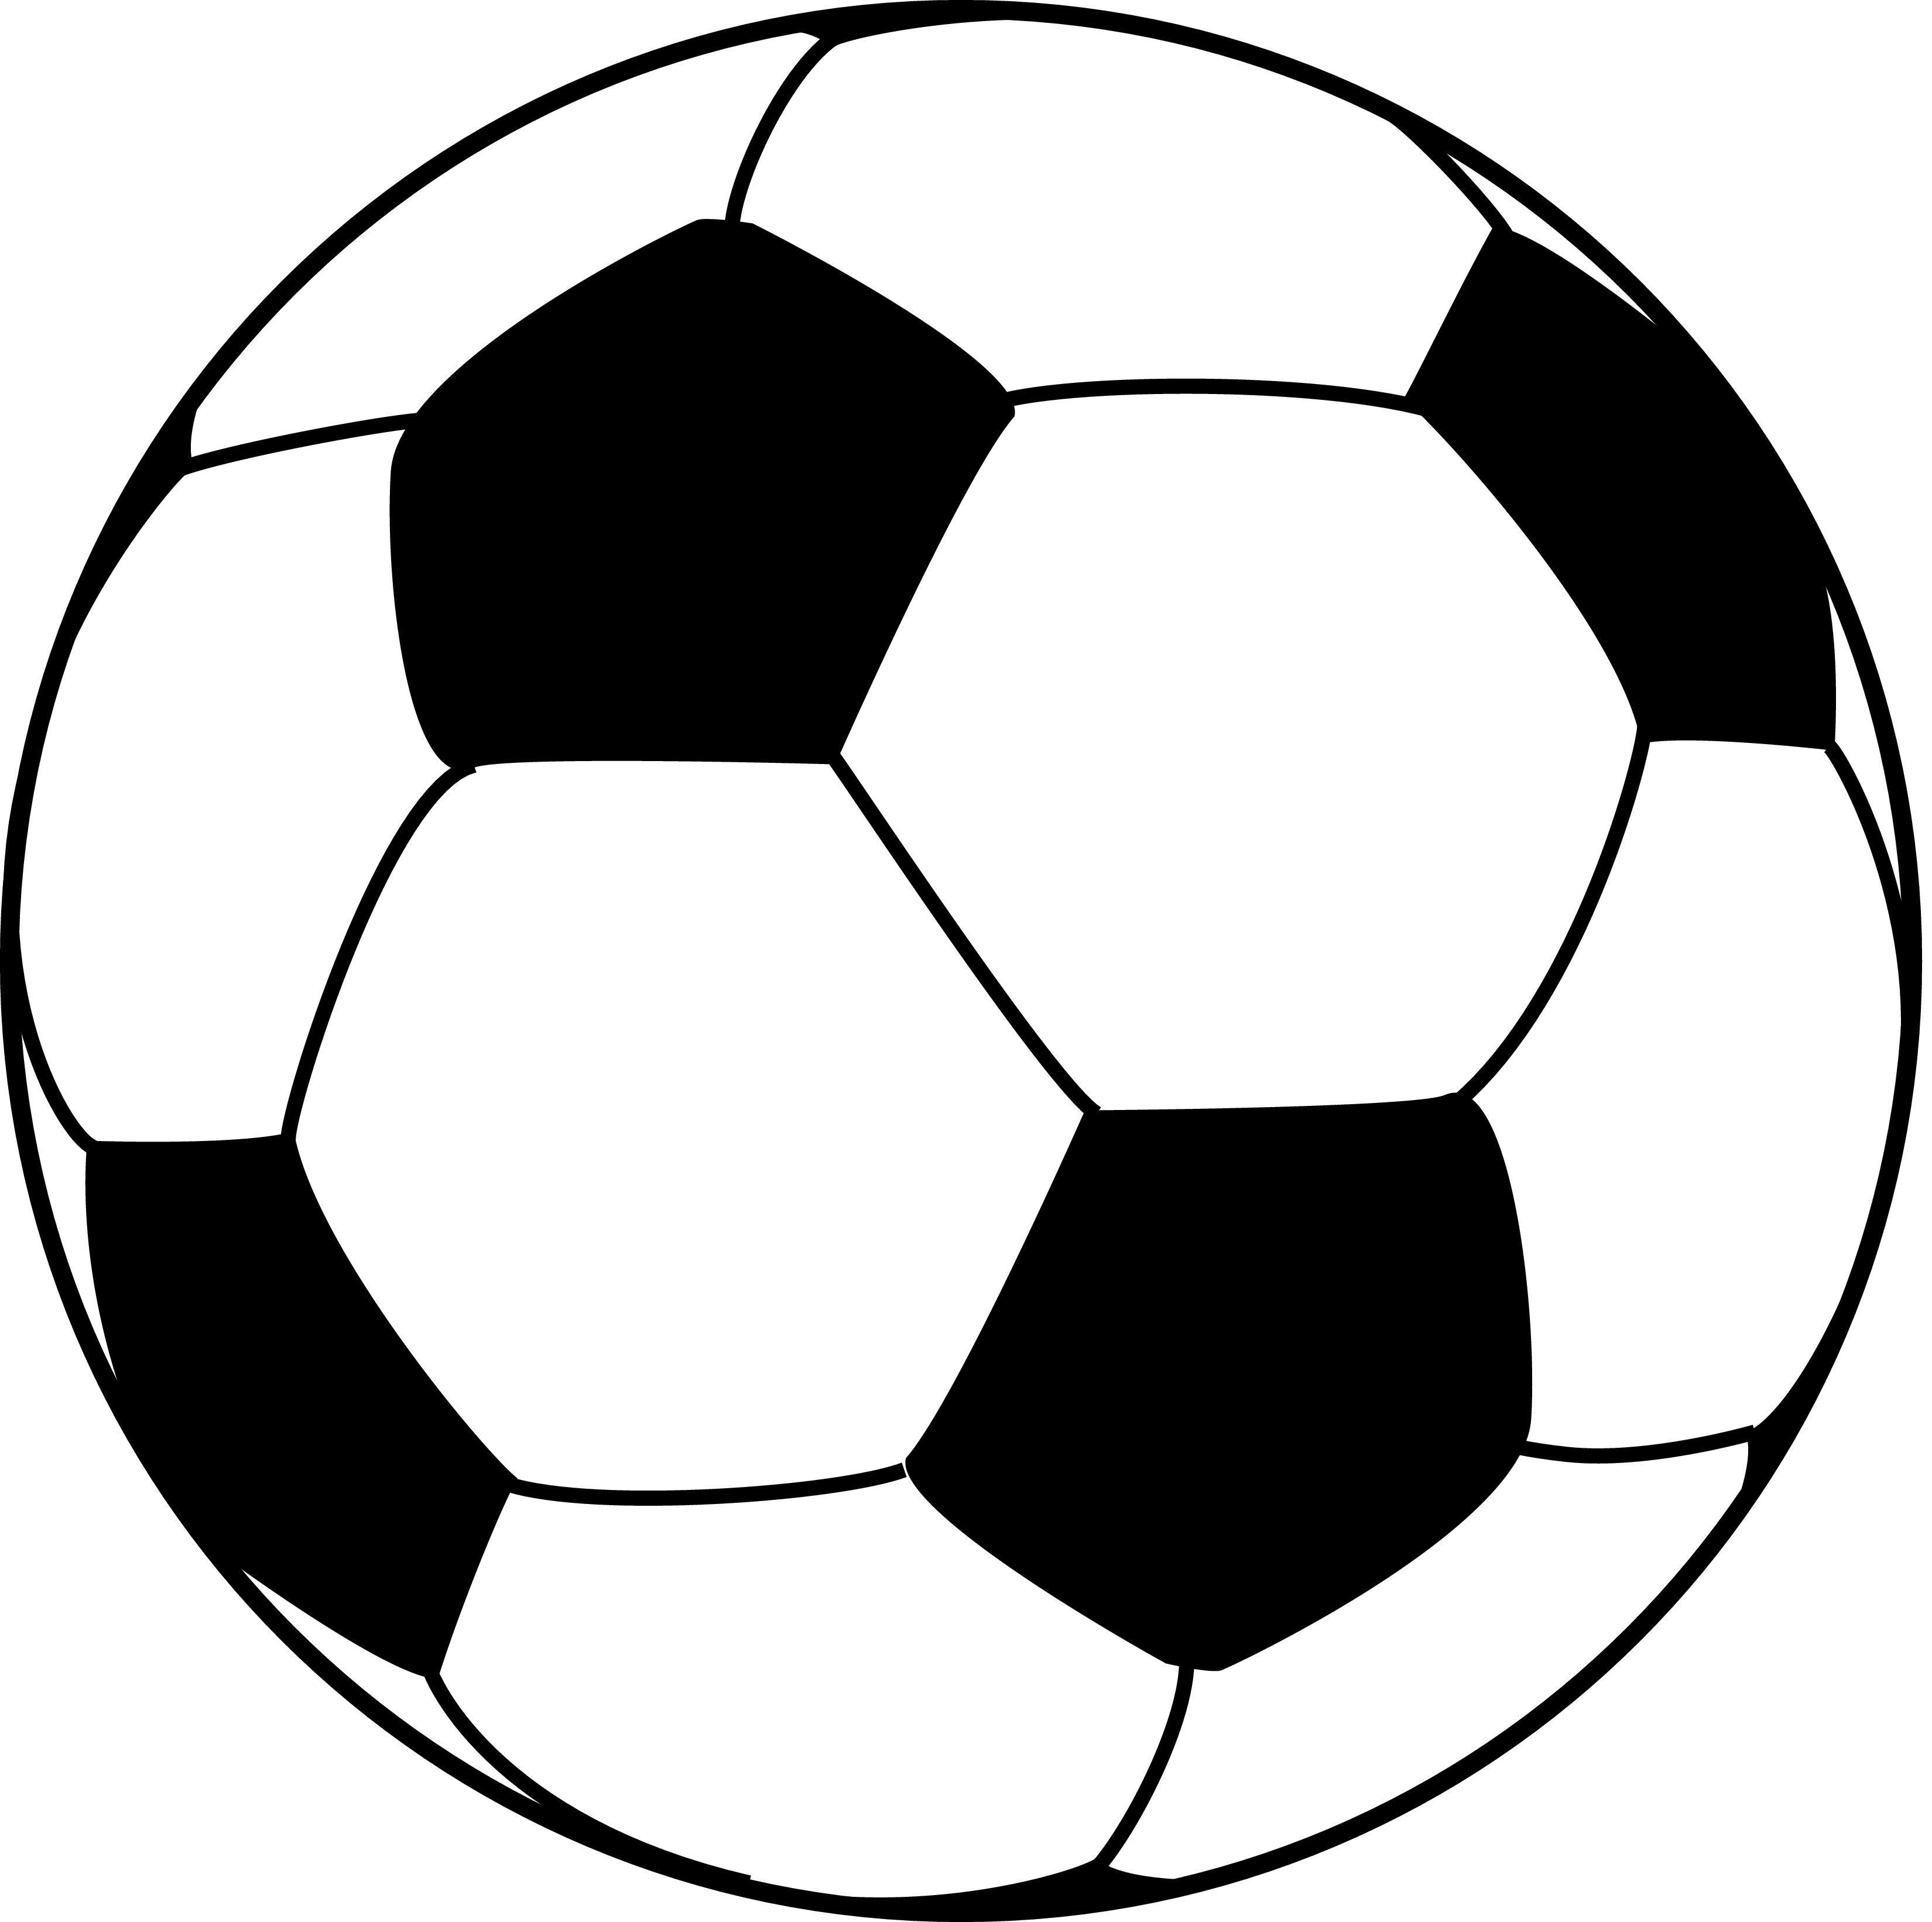 Exceptional image regarding printable soccer ball template